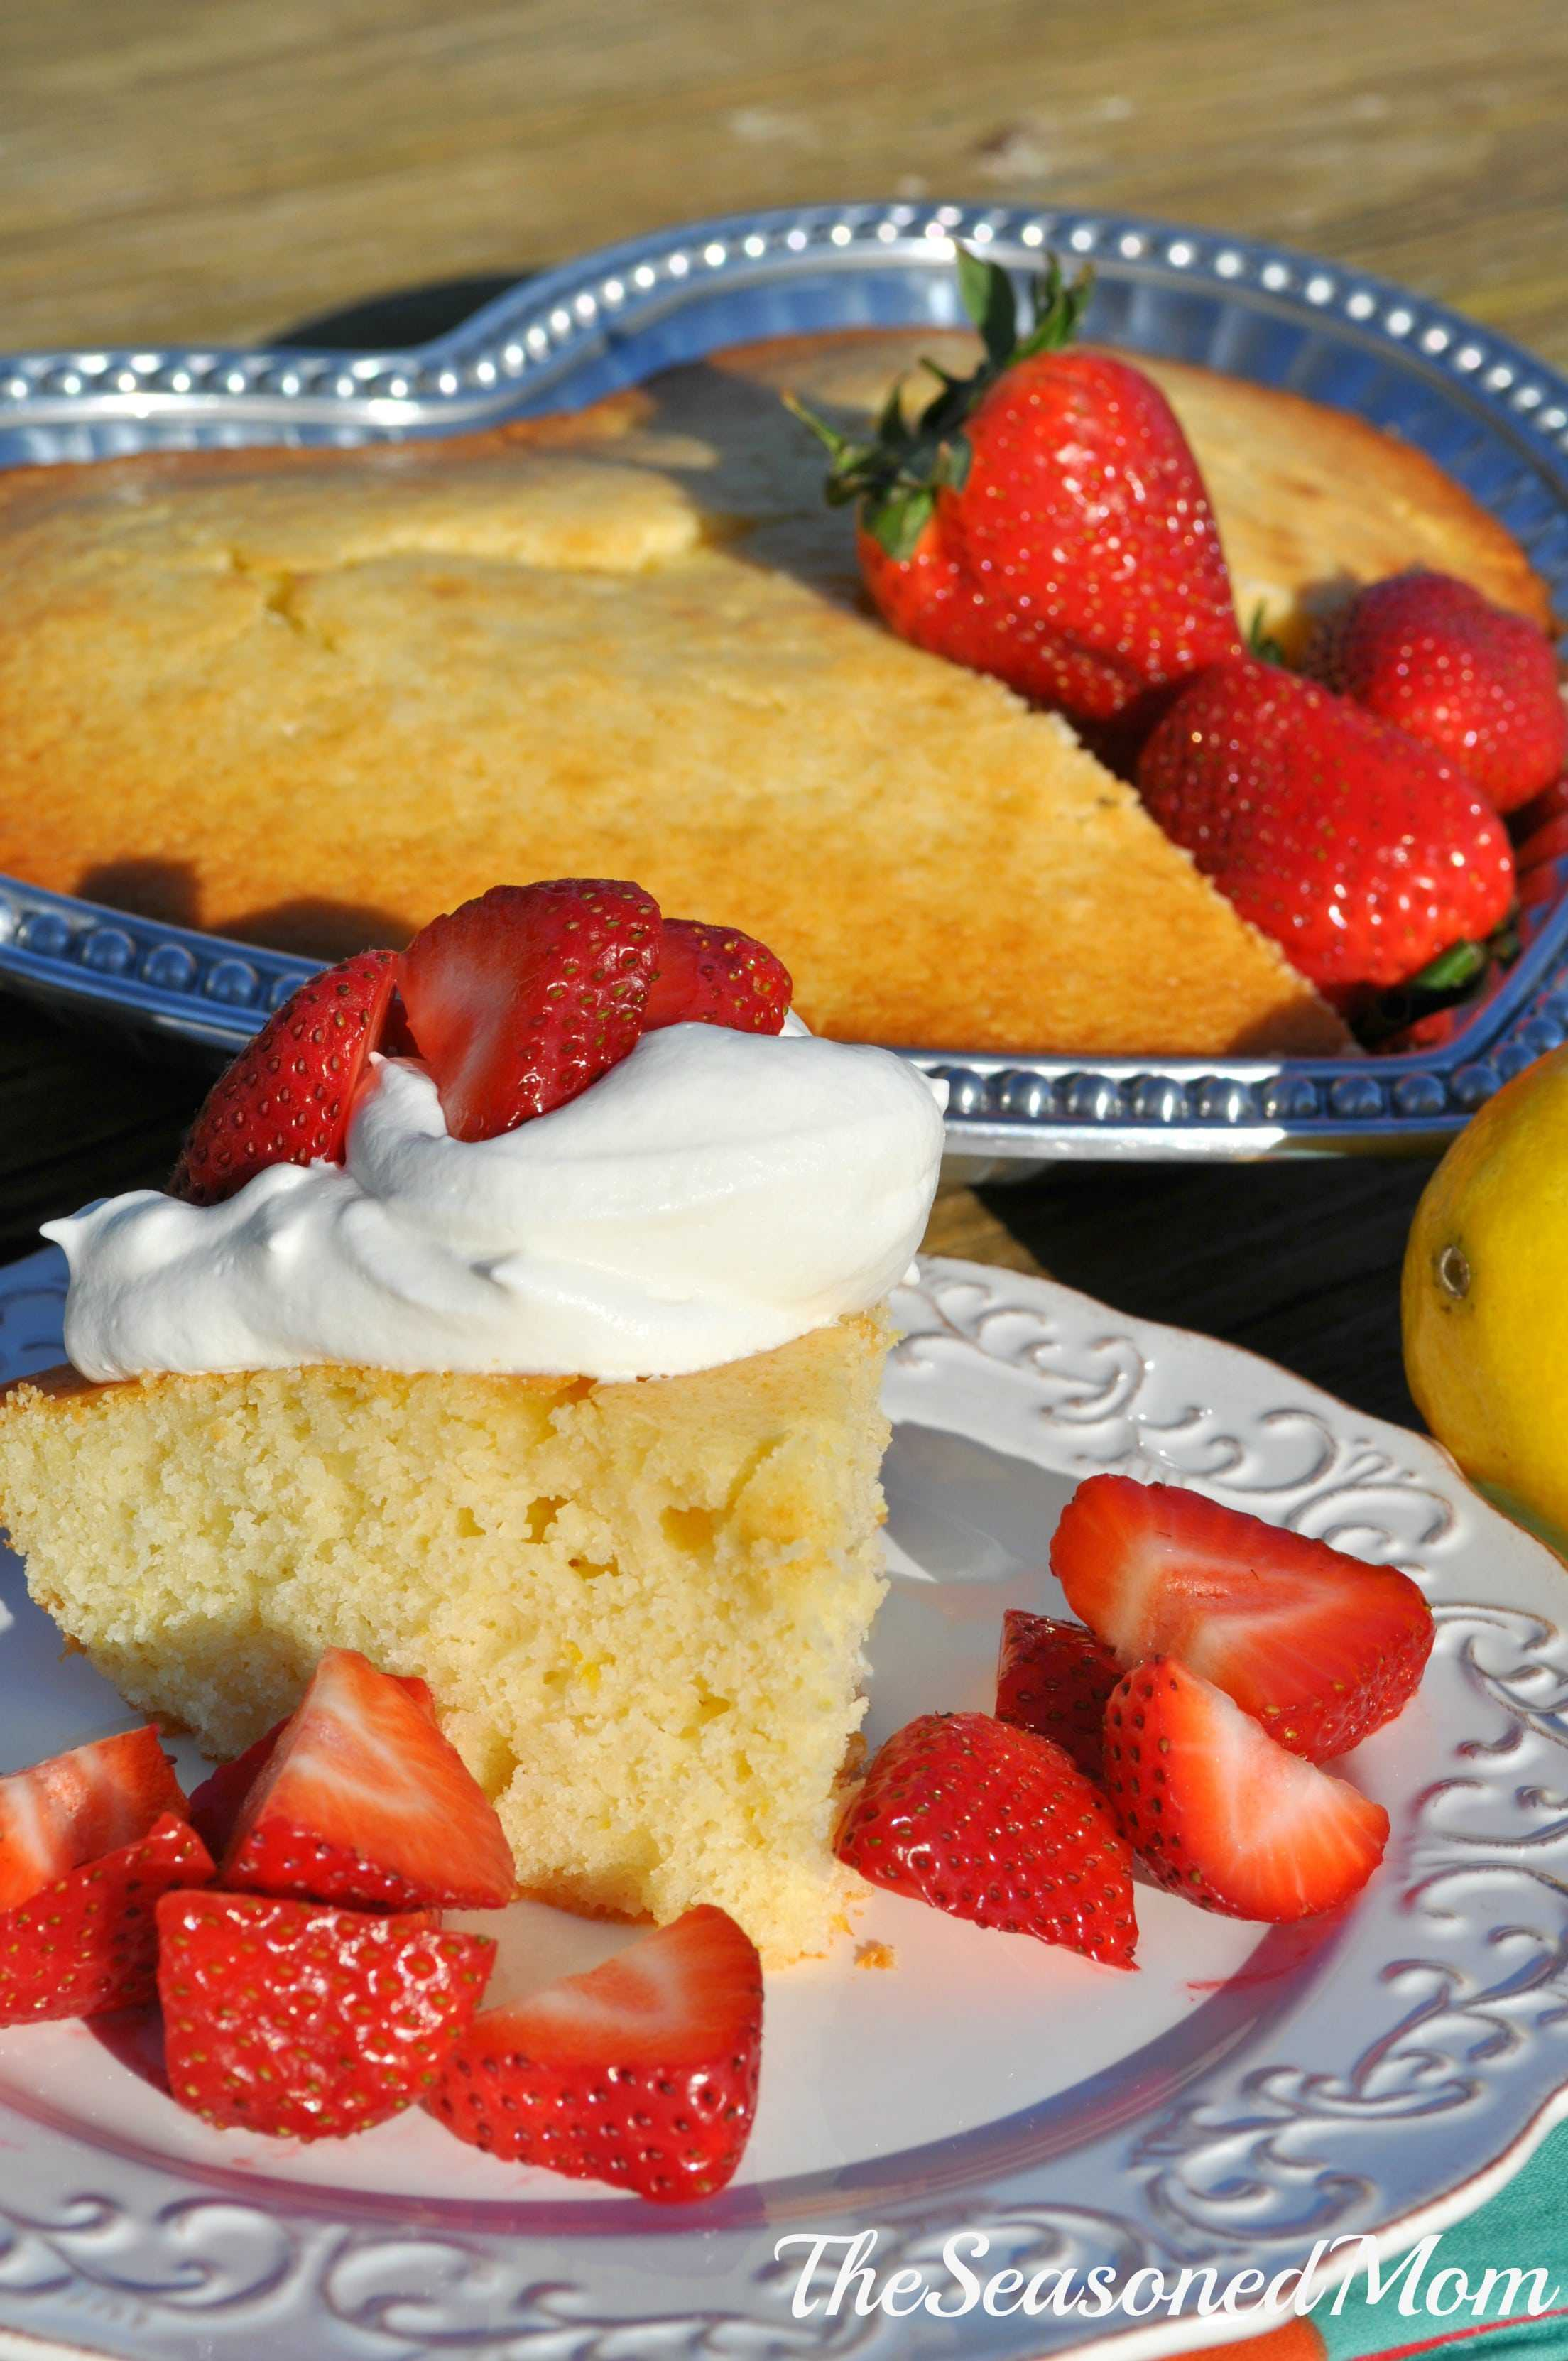 Lemon Strawberry Shortcake copy